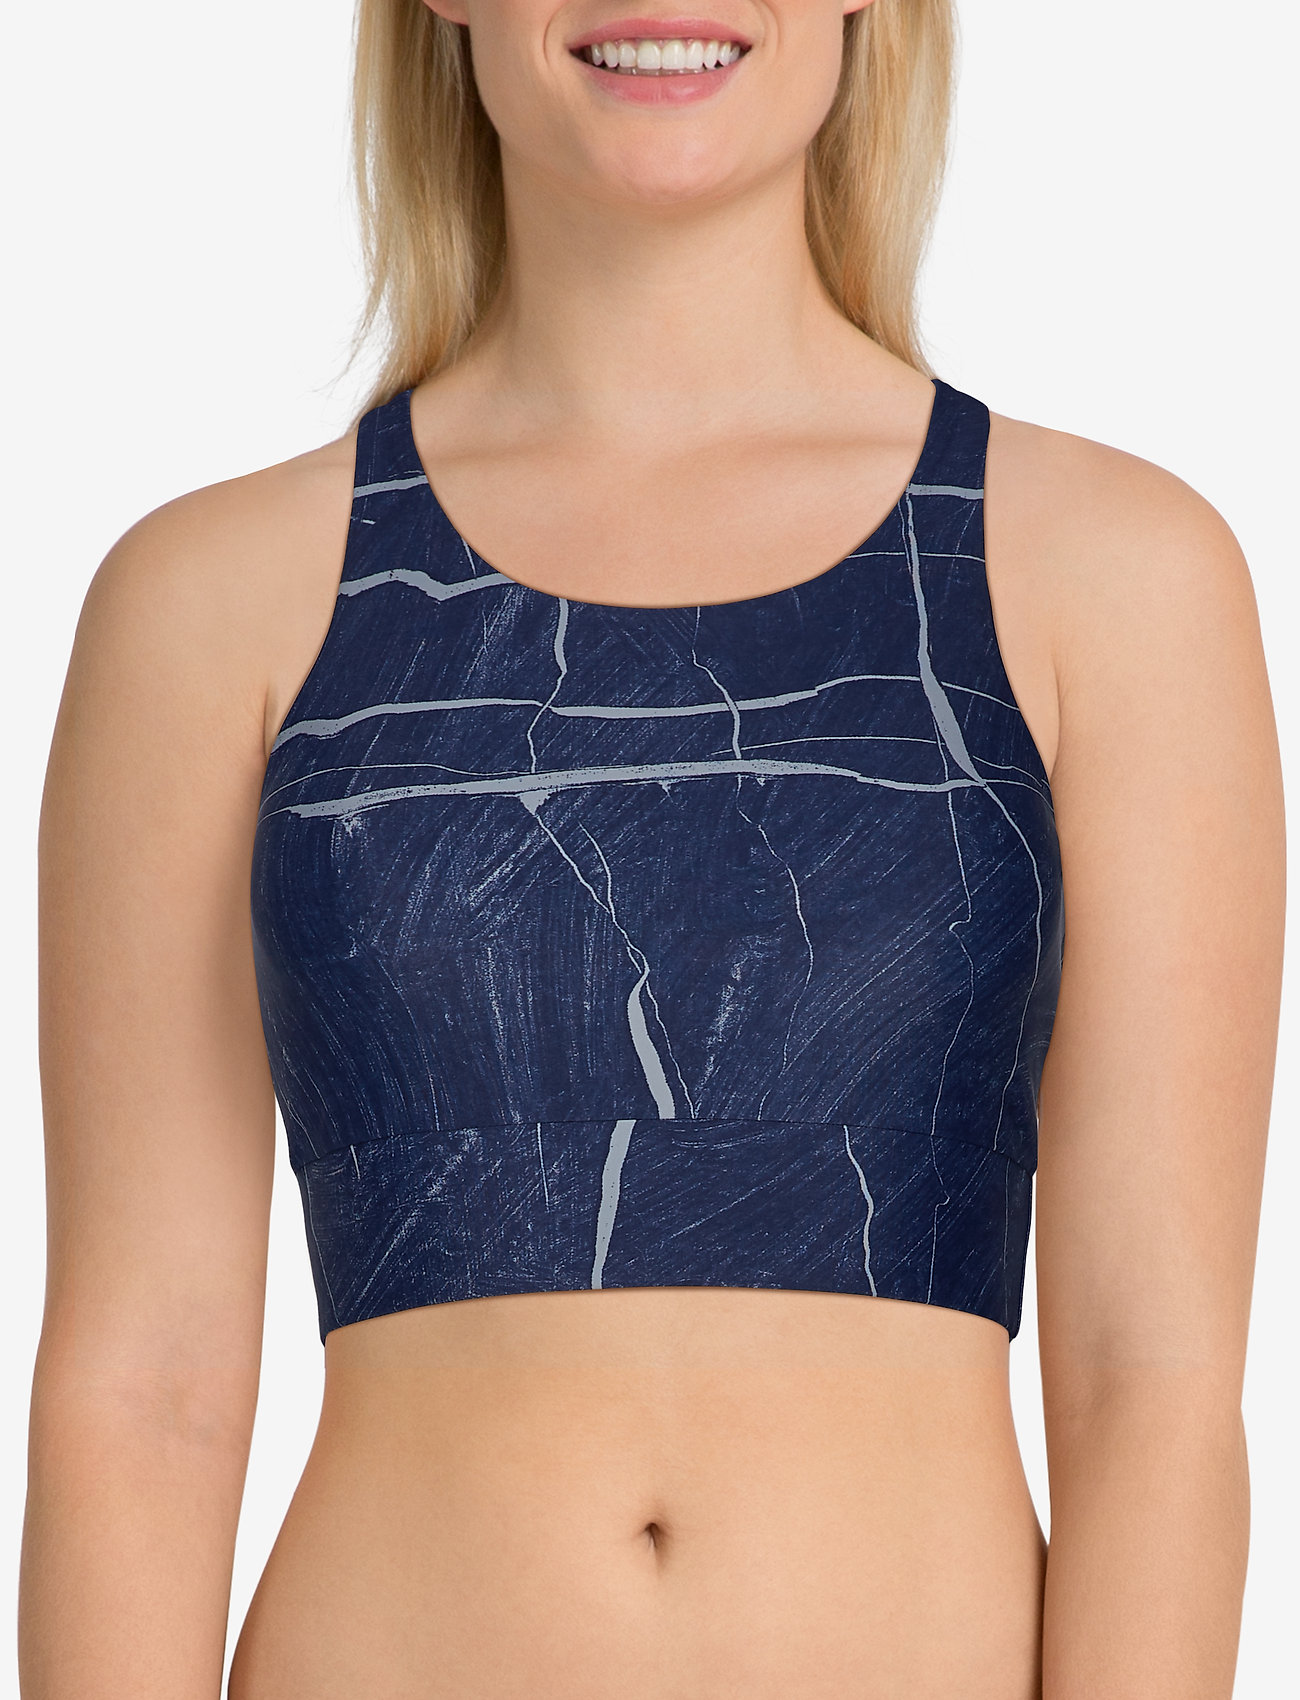 Casall Concious Connected Sports Top - CONNECTED BLUE